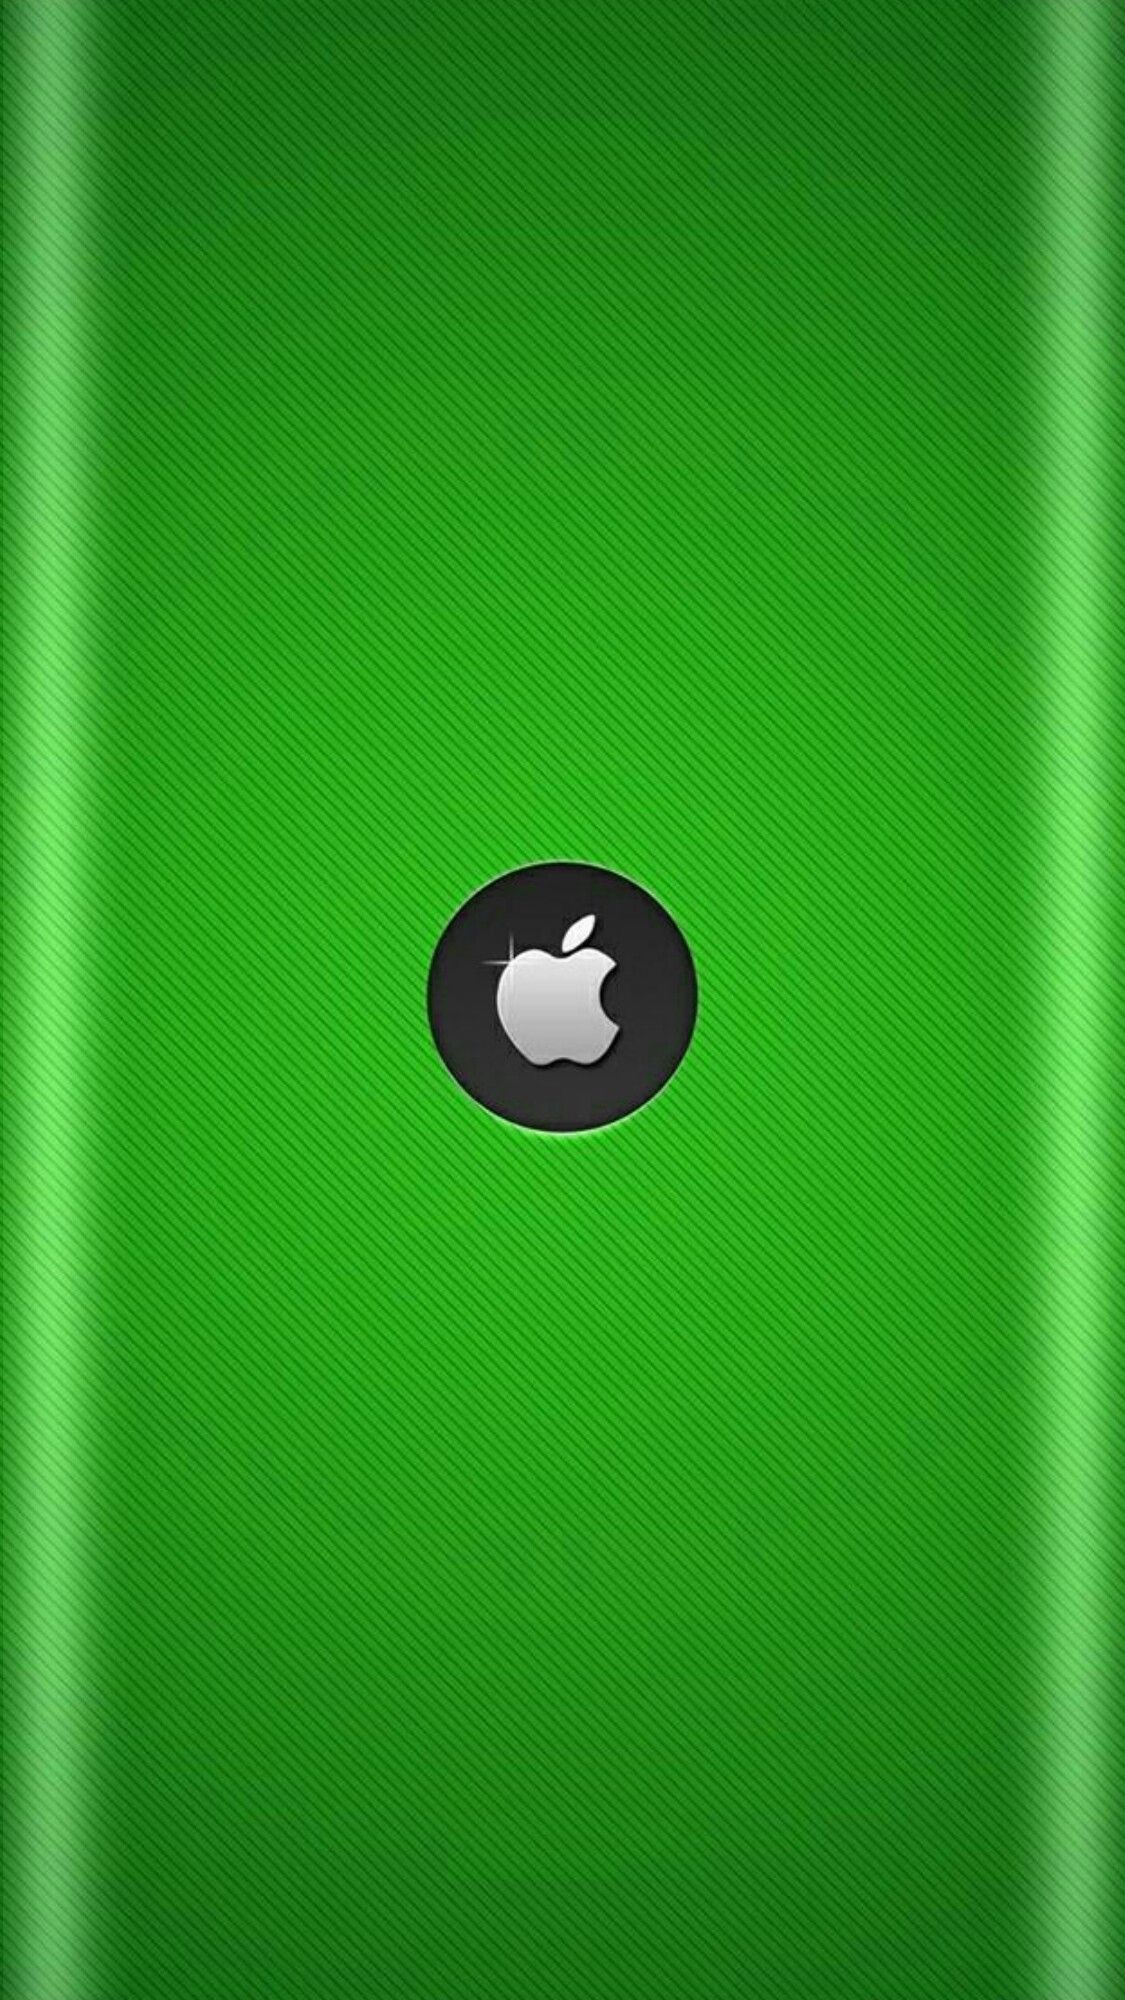 apple iphone wallpapers (33)